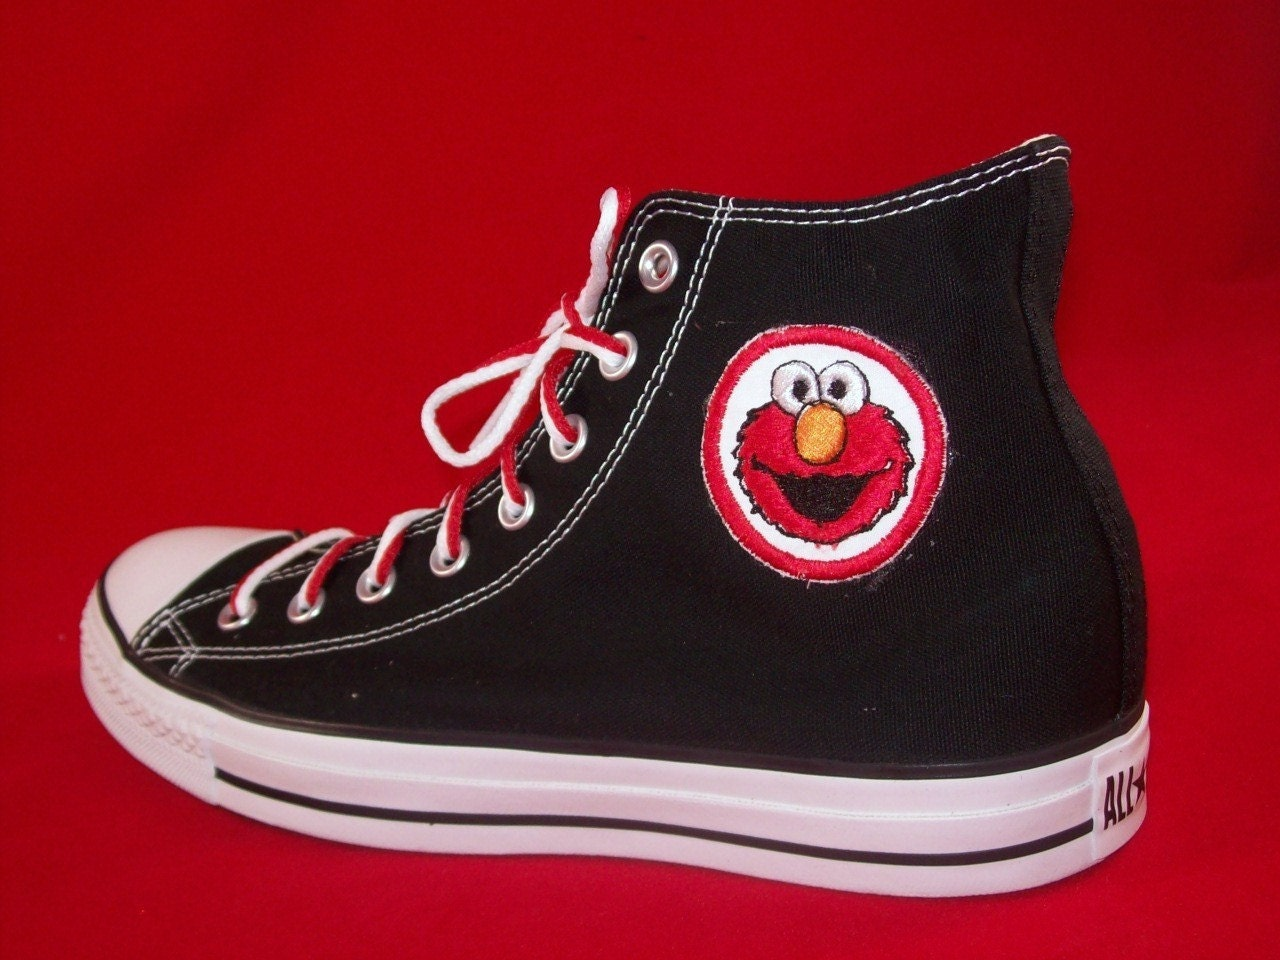 adult custom chuck taylor high top elmo converse shoes